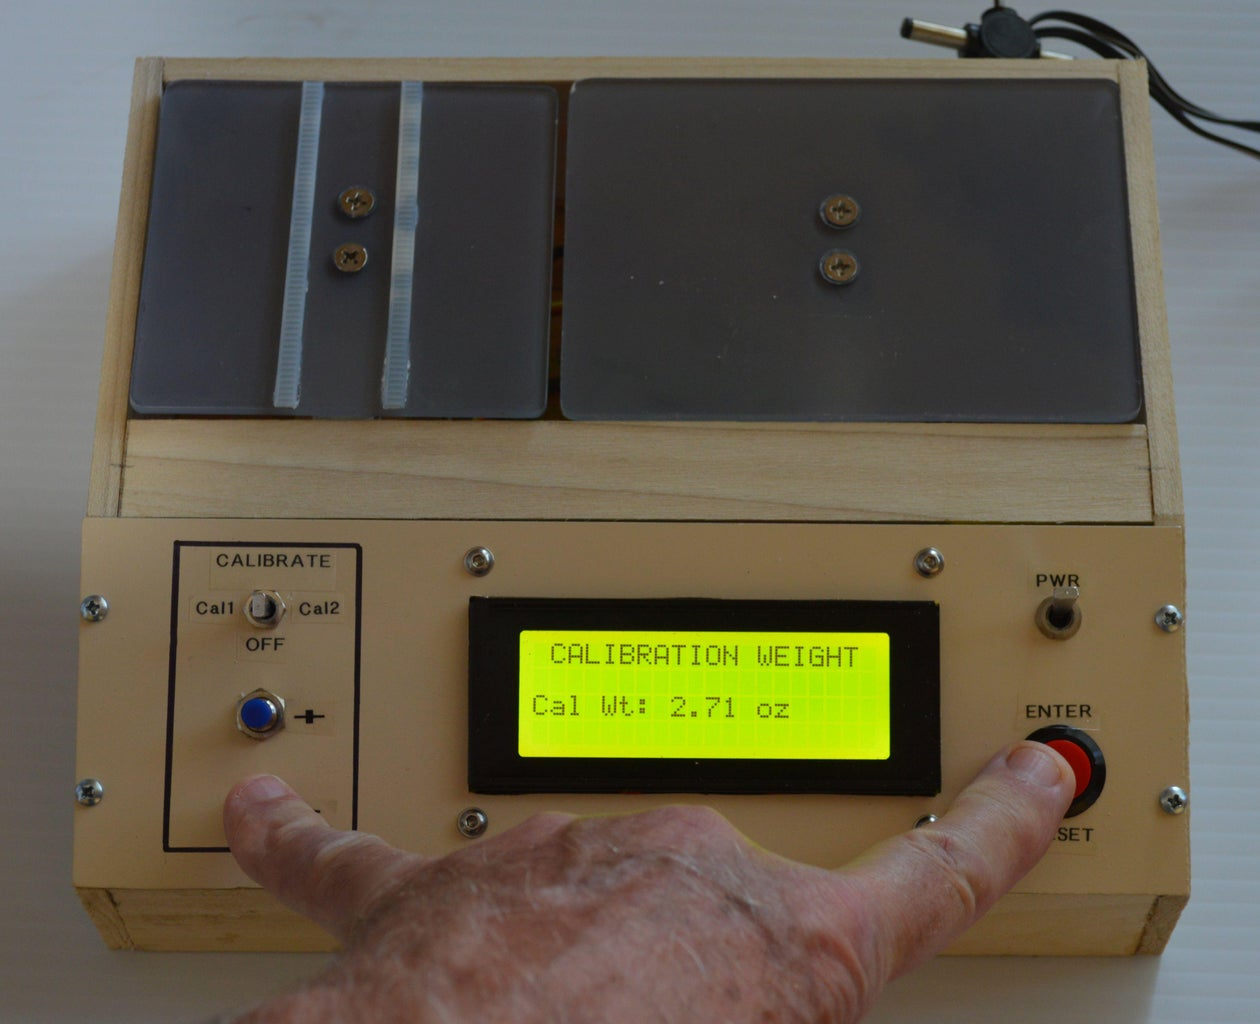 Operation - Setting the Calibration Weight Value